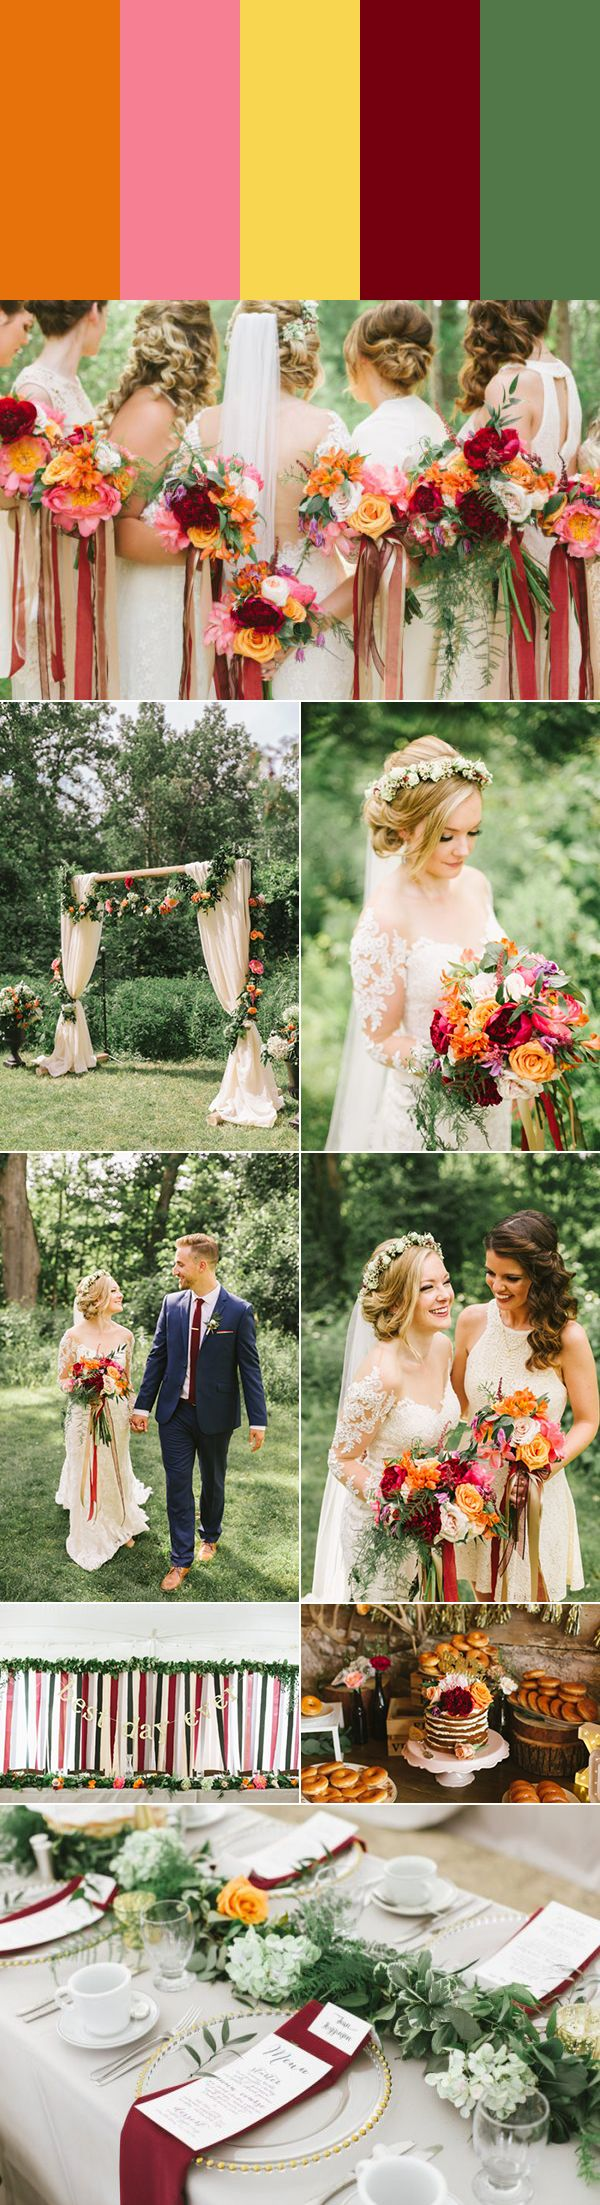 These 5 Orange Wedding Color Palettes are Totally On Trend